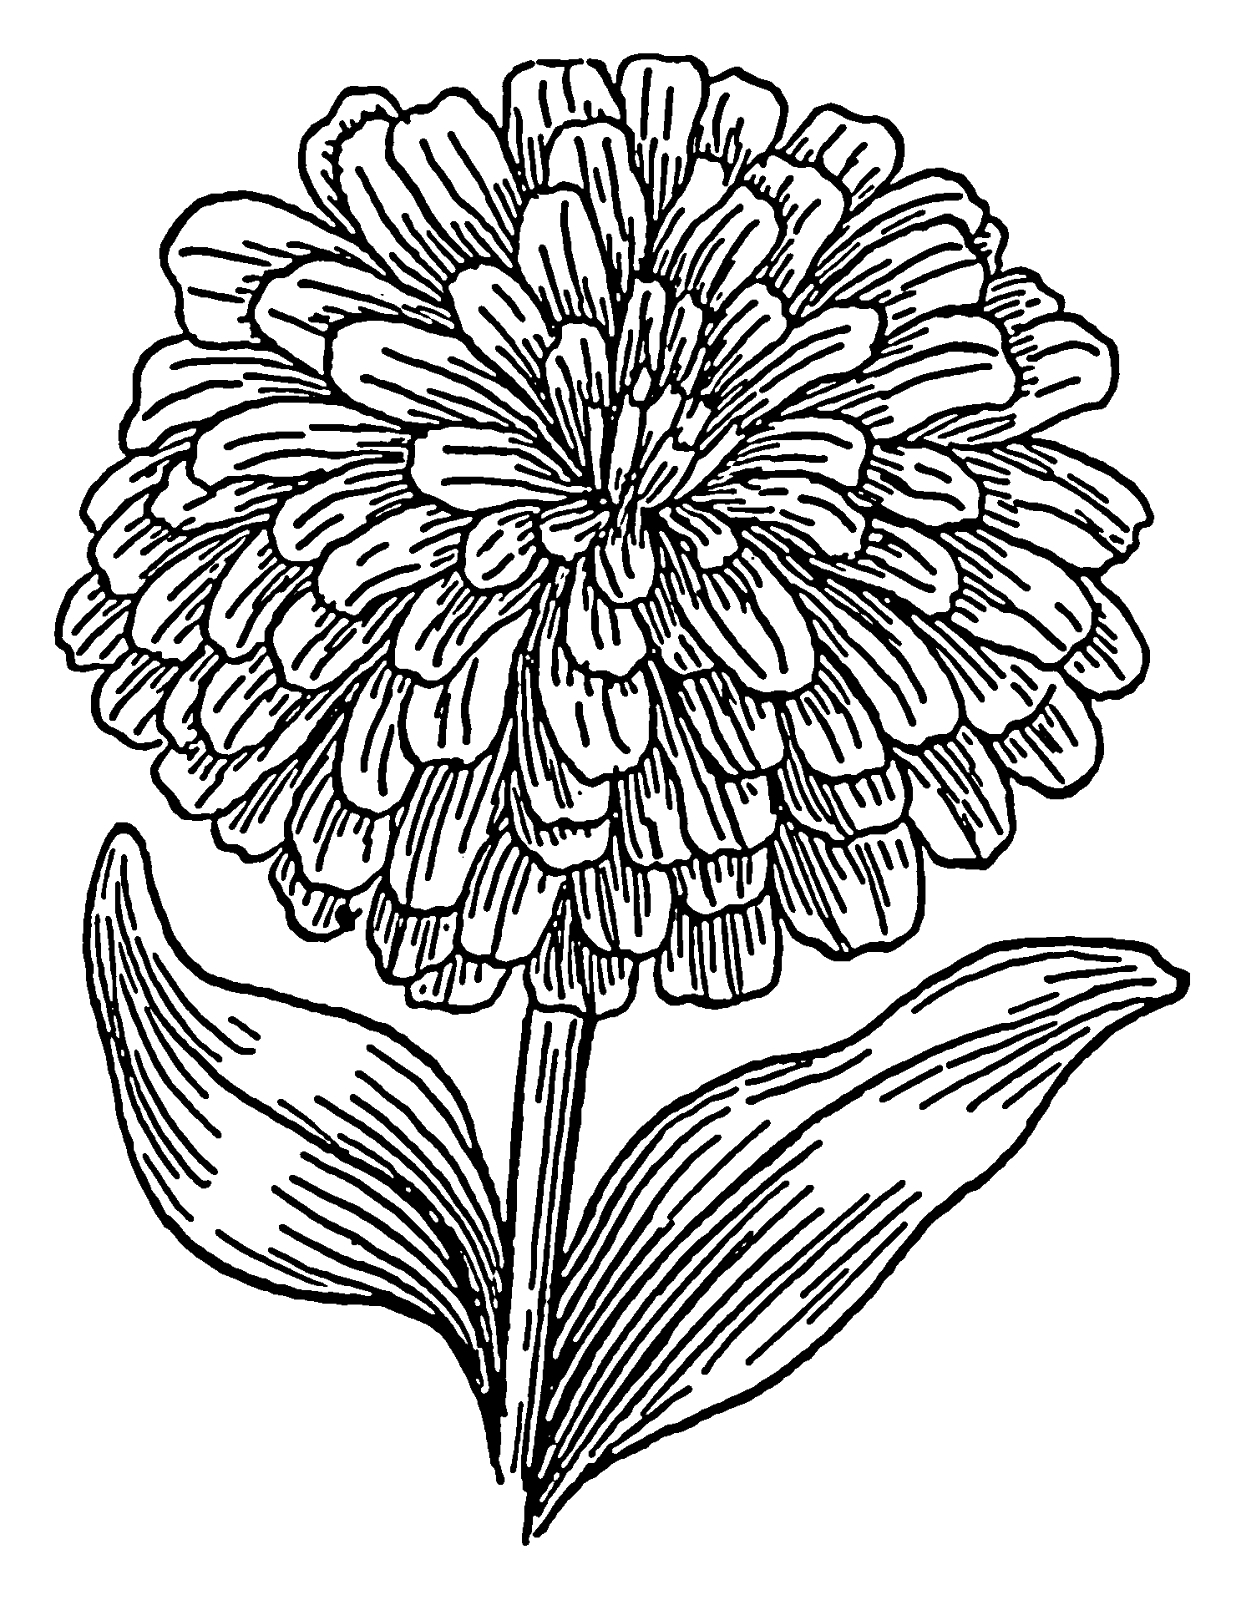 1236x1600 Fresh Marigold Flower Coloring Pages Design Printable Coloring Sheet